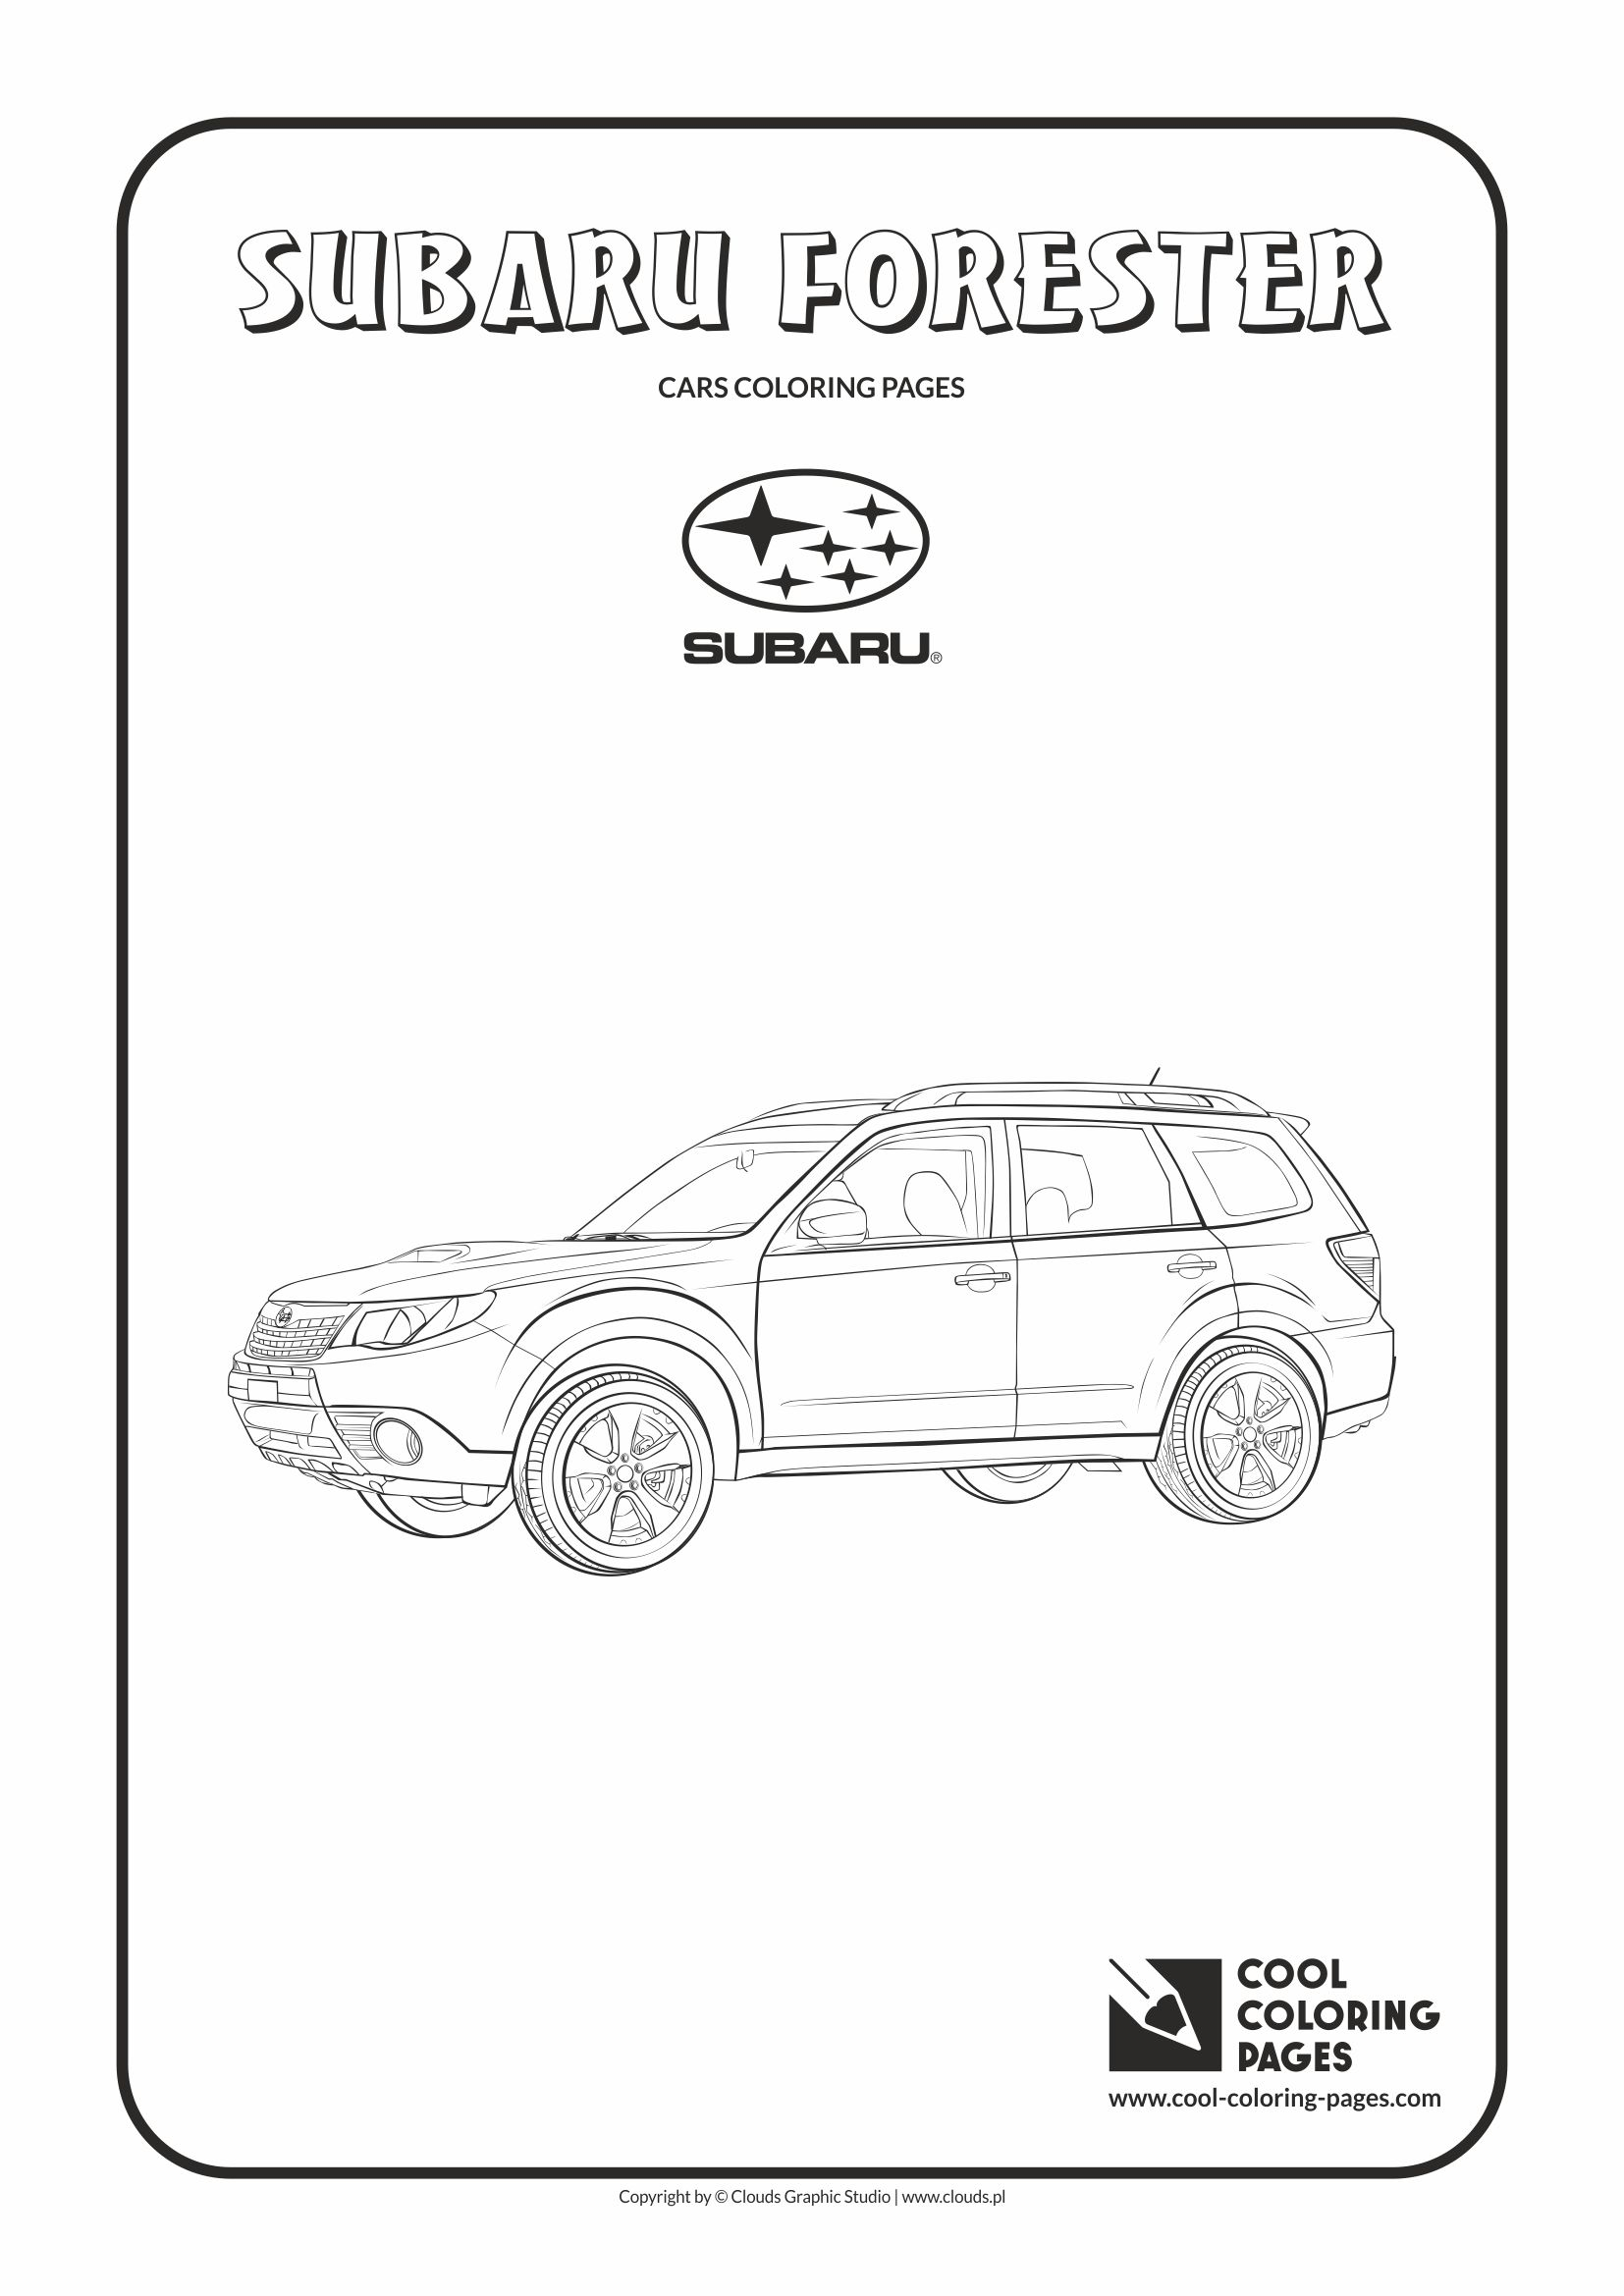 Cool Coloring Pages - Vehicles / Subaru Forester / Coloring page with Subaru Forester